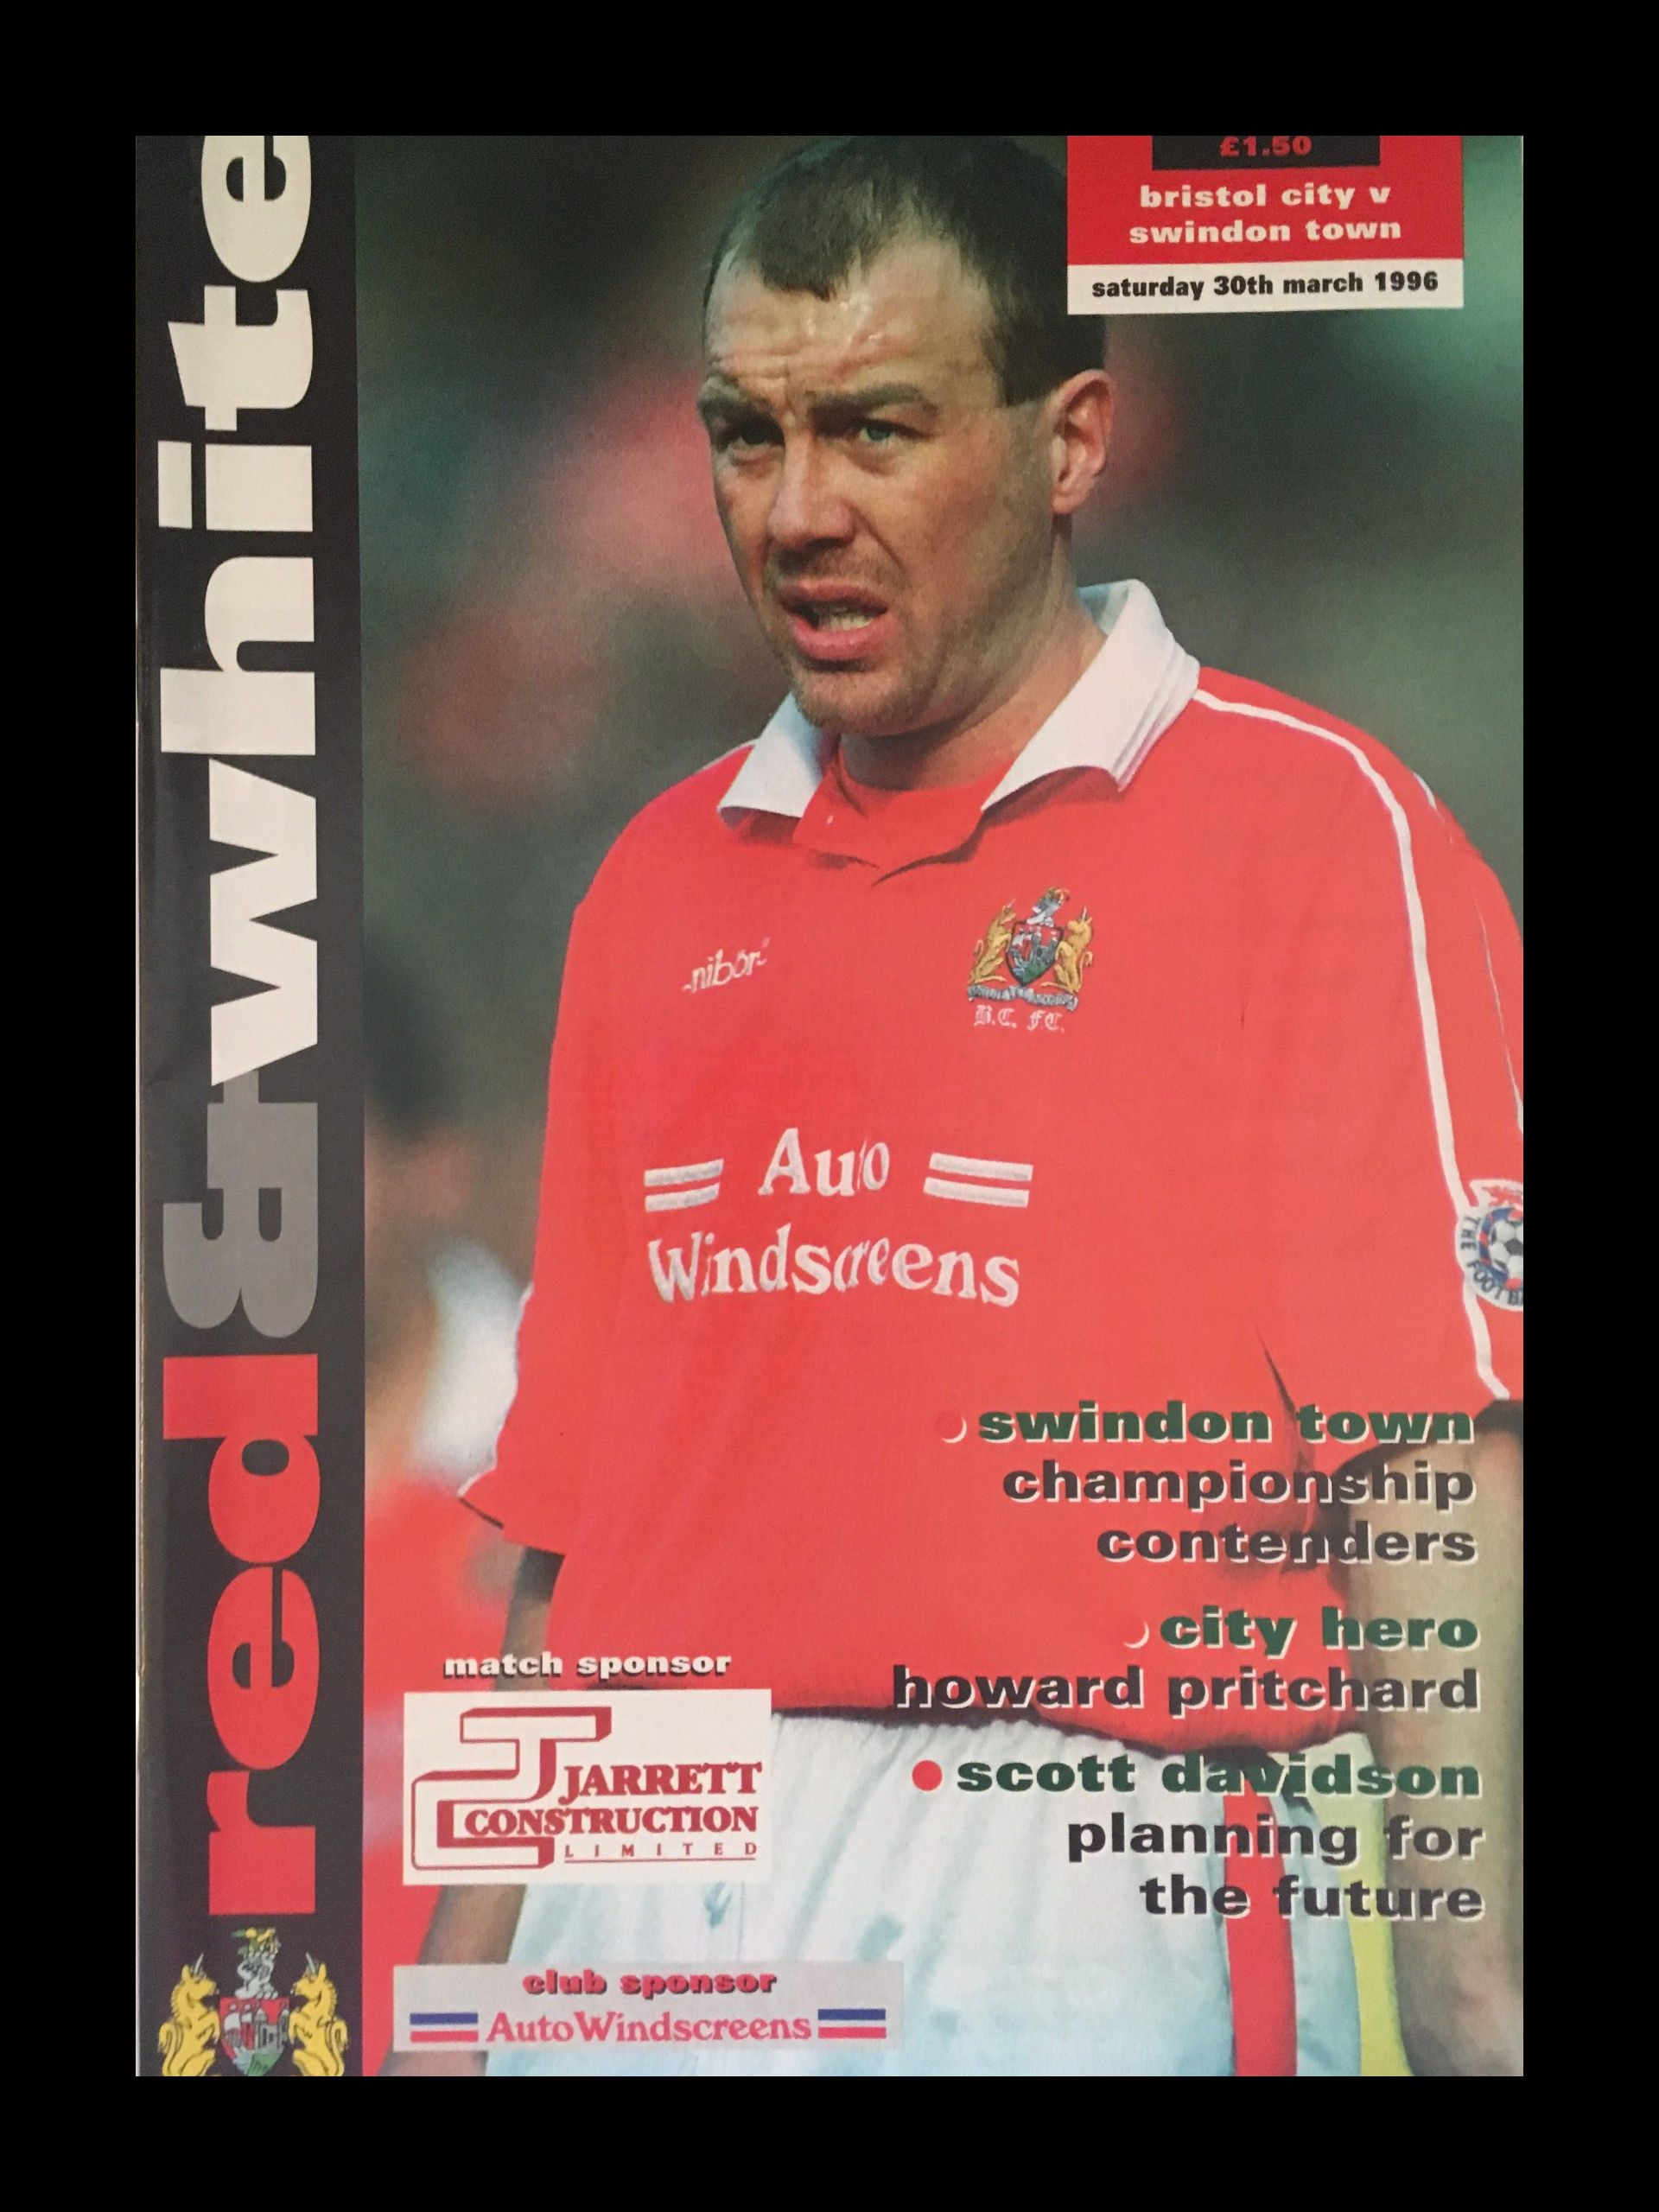 Bristol City v Swindon Town 30-03-1996 Programme